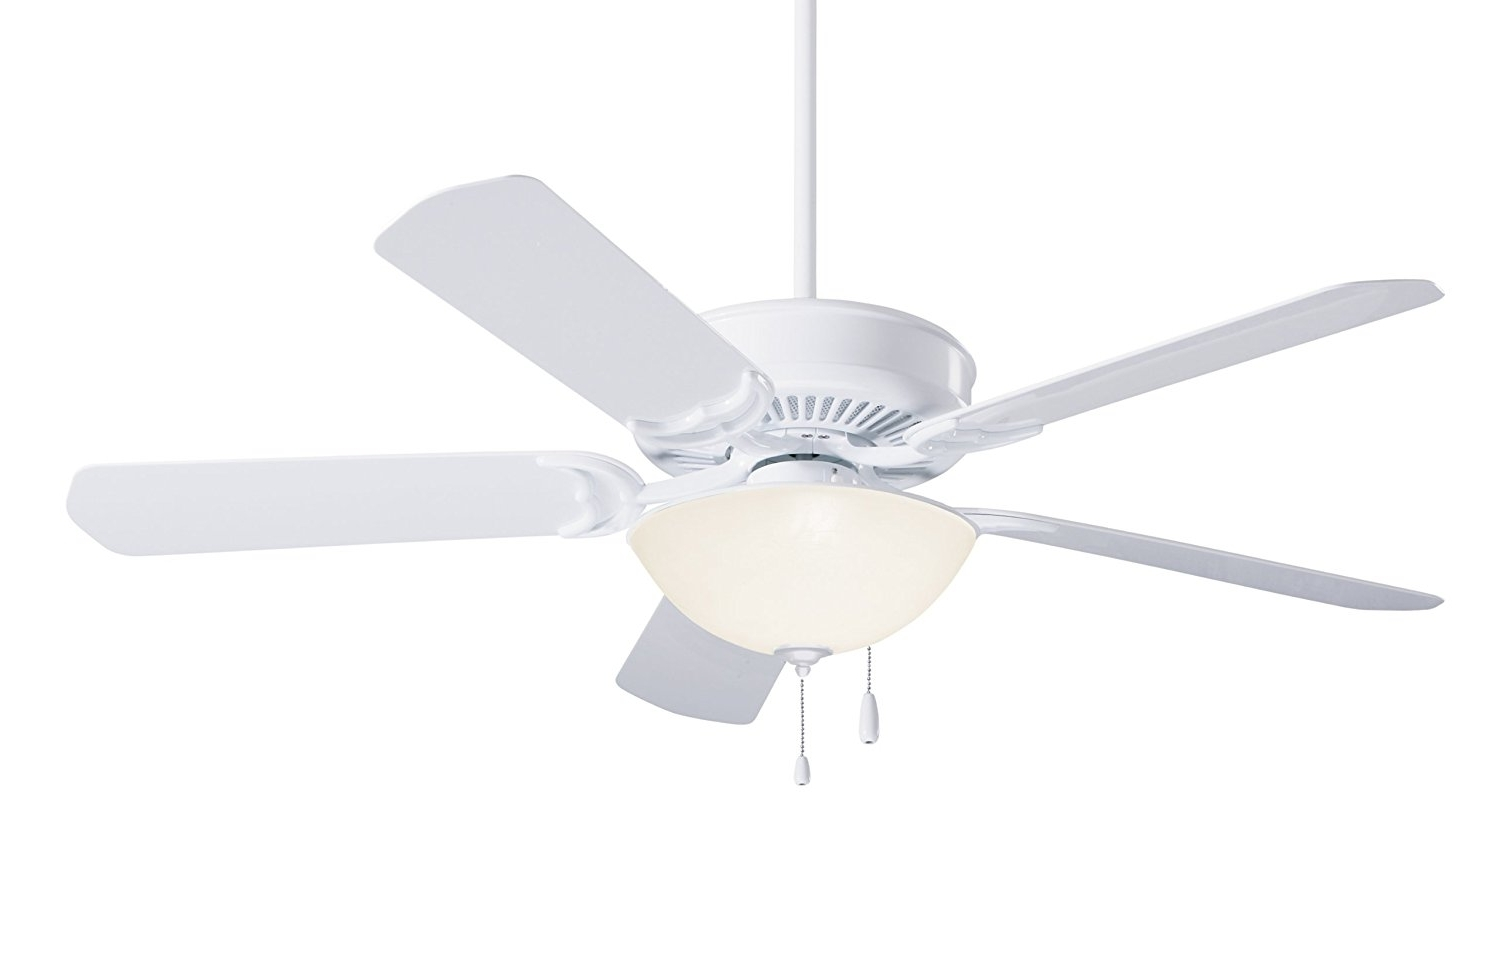 Well Known Ceiling Fan: Breathtaking Ceiling Fan Cfm Ideas Ceiling Fans With In Outdoor Ceiling Fans With High Cfm (View 8 of 20)